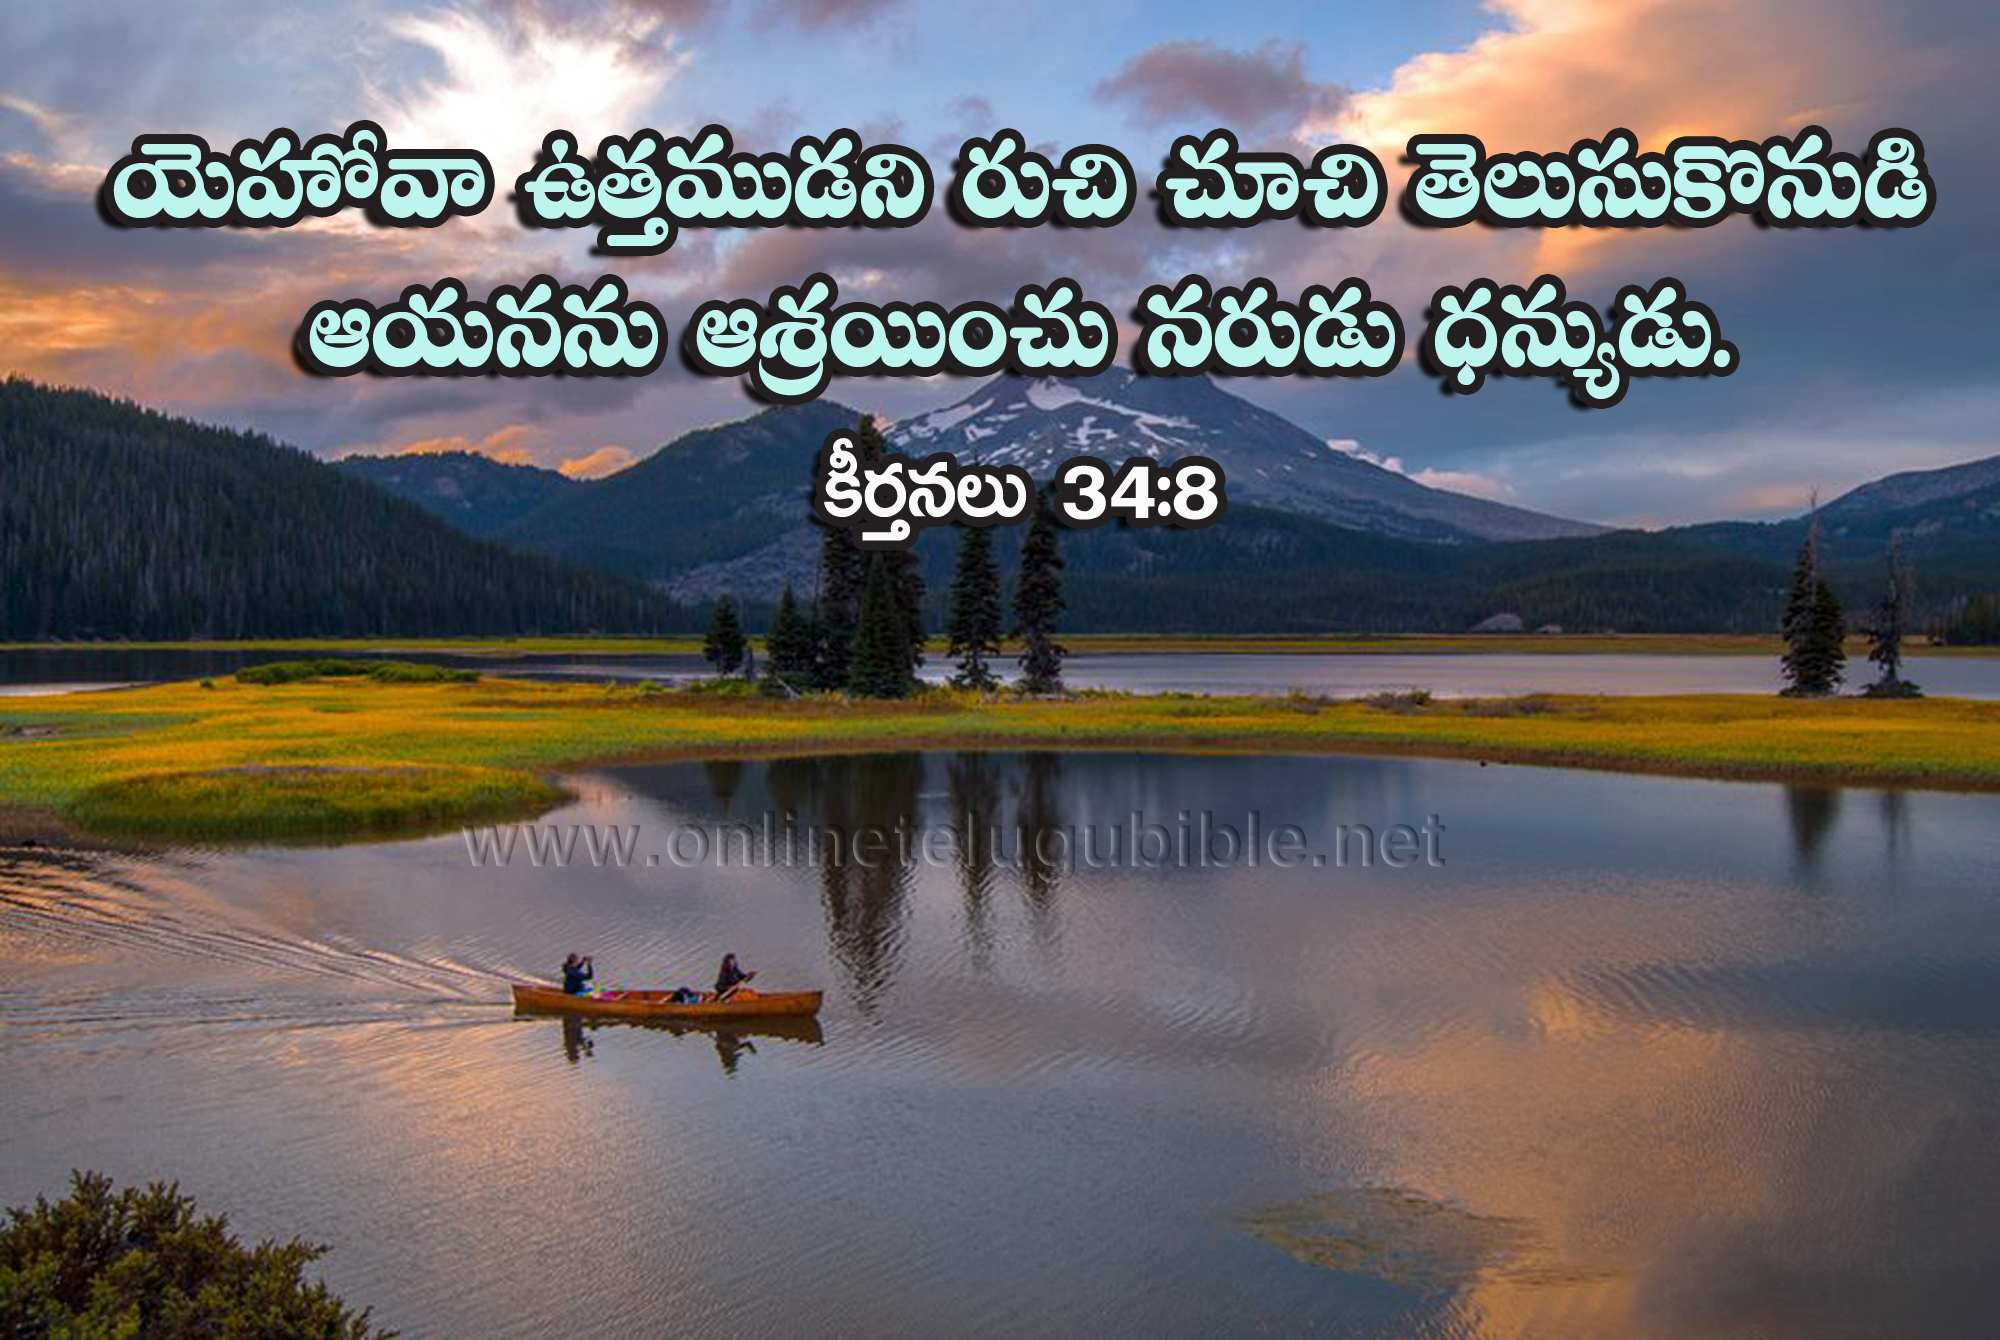 Wallpaper download hd love for mobile - Download Telugu Bible Words Wallpapers Gallery